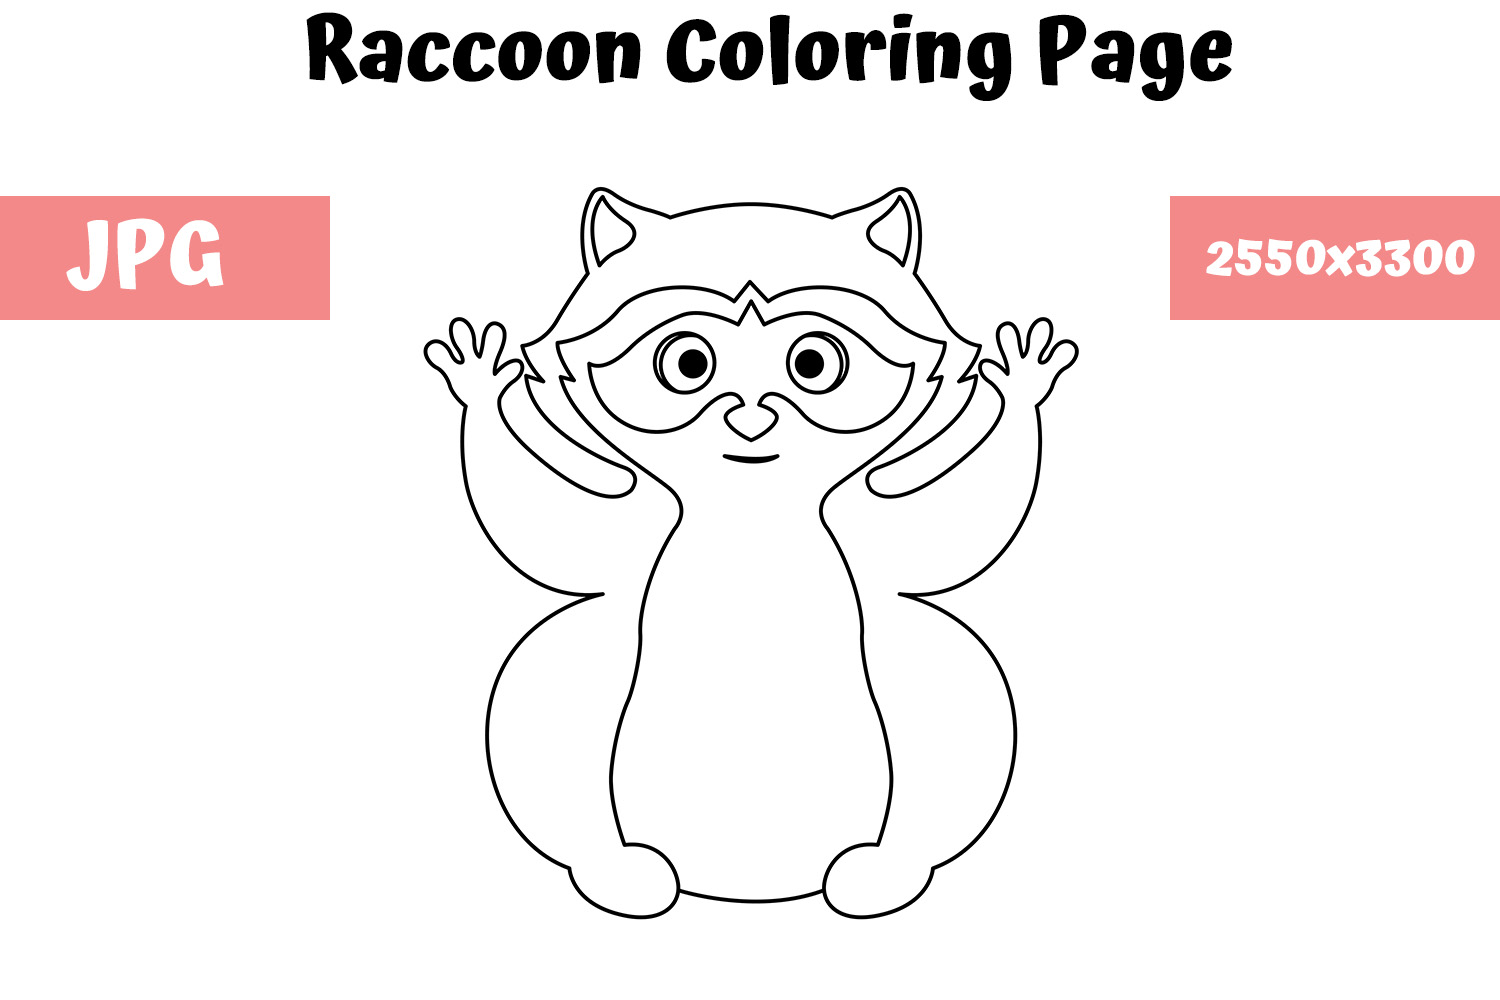 Raccoon Coloring Page For Kids Graphic By Mybeautifulfiles Creative Fabrica